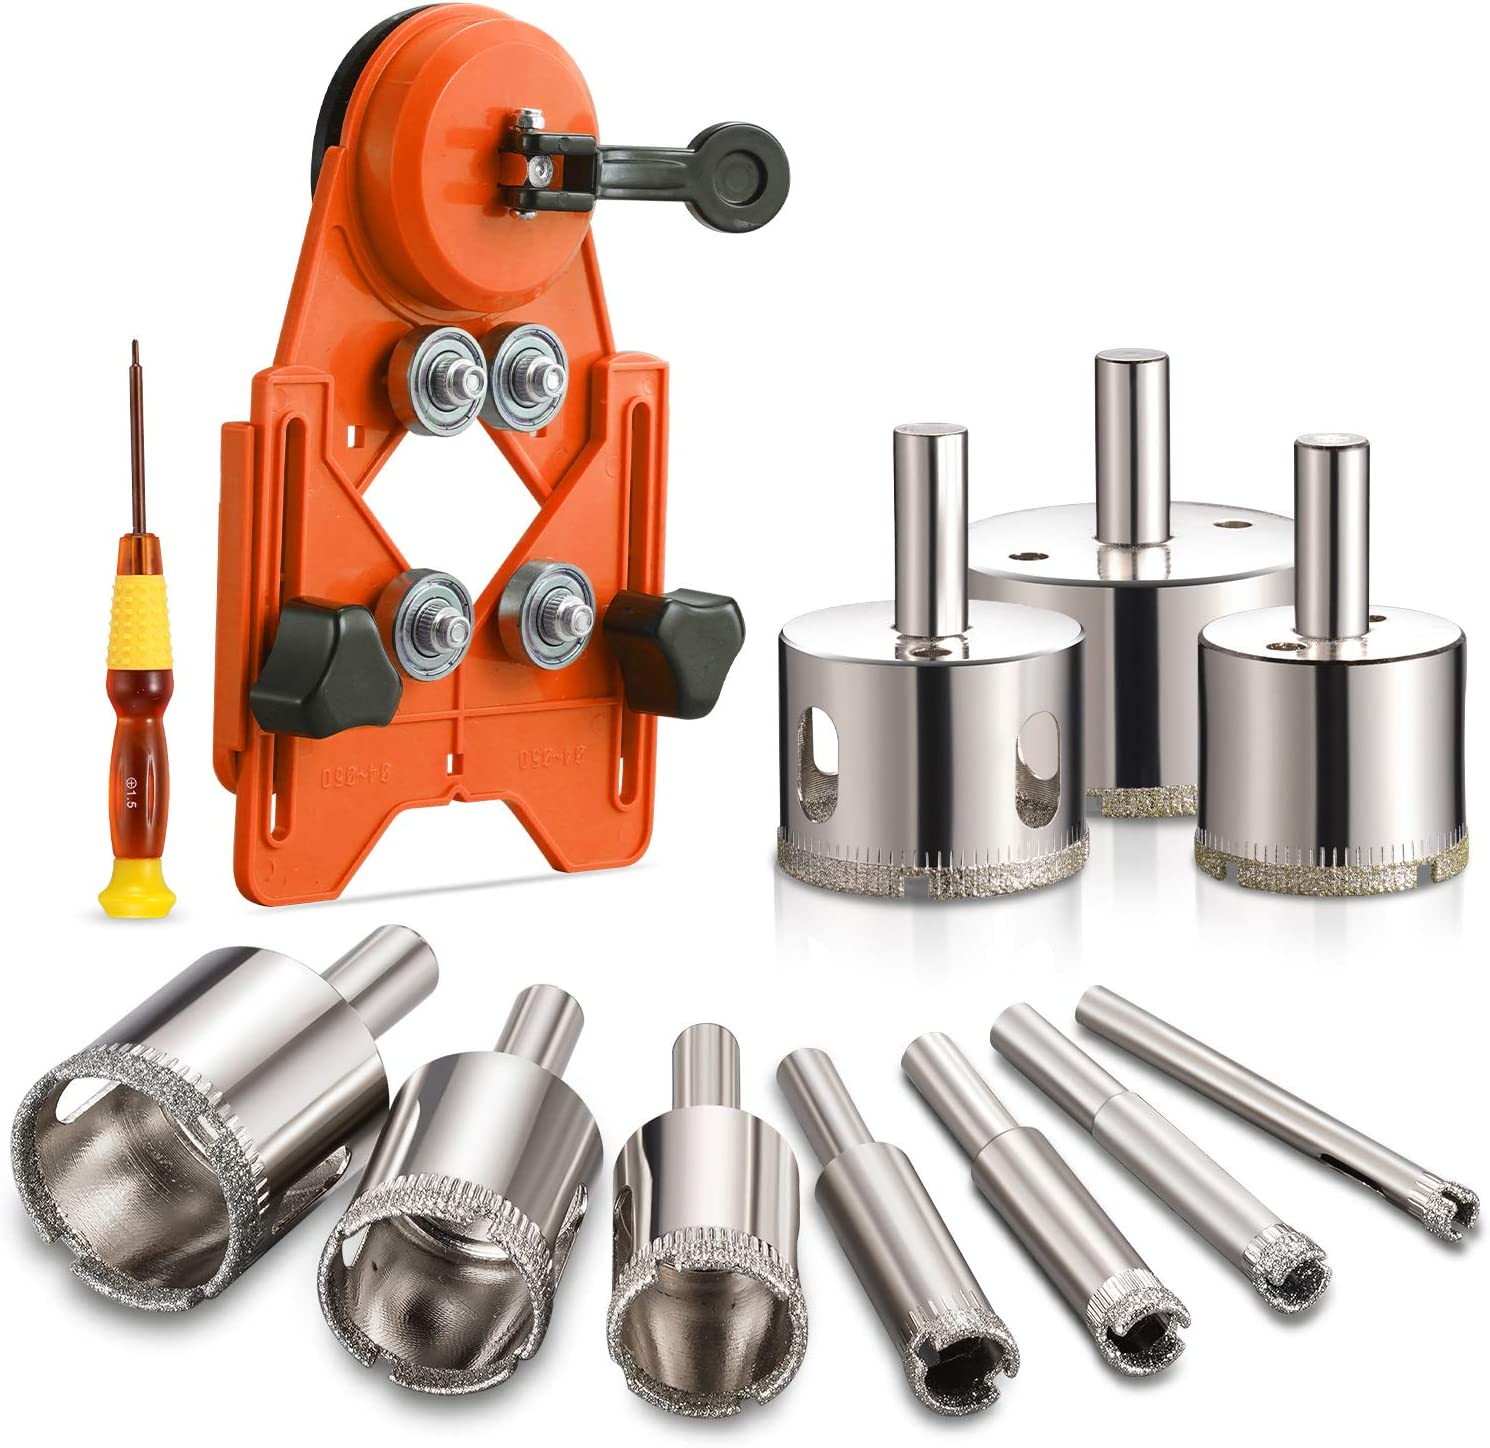 THINKWORK Diamond Drill Bits, Hollow Drill Hole Saw Set, 5-Piece Tile  Opener with Hole Saw Guidance Fixture, Suitable for Ceramic, Glass, Tile,